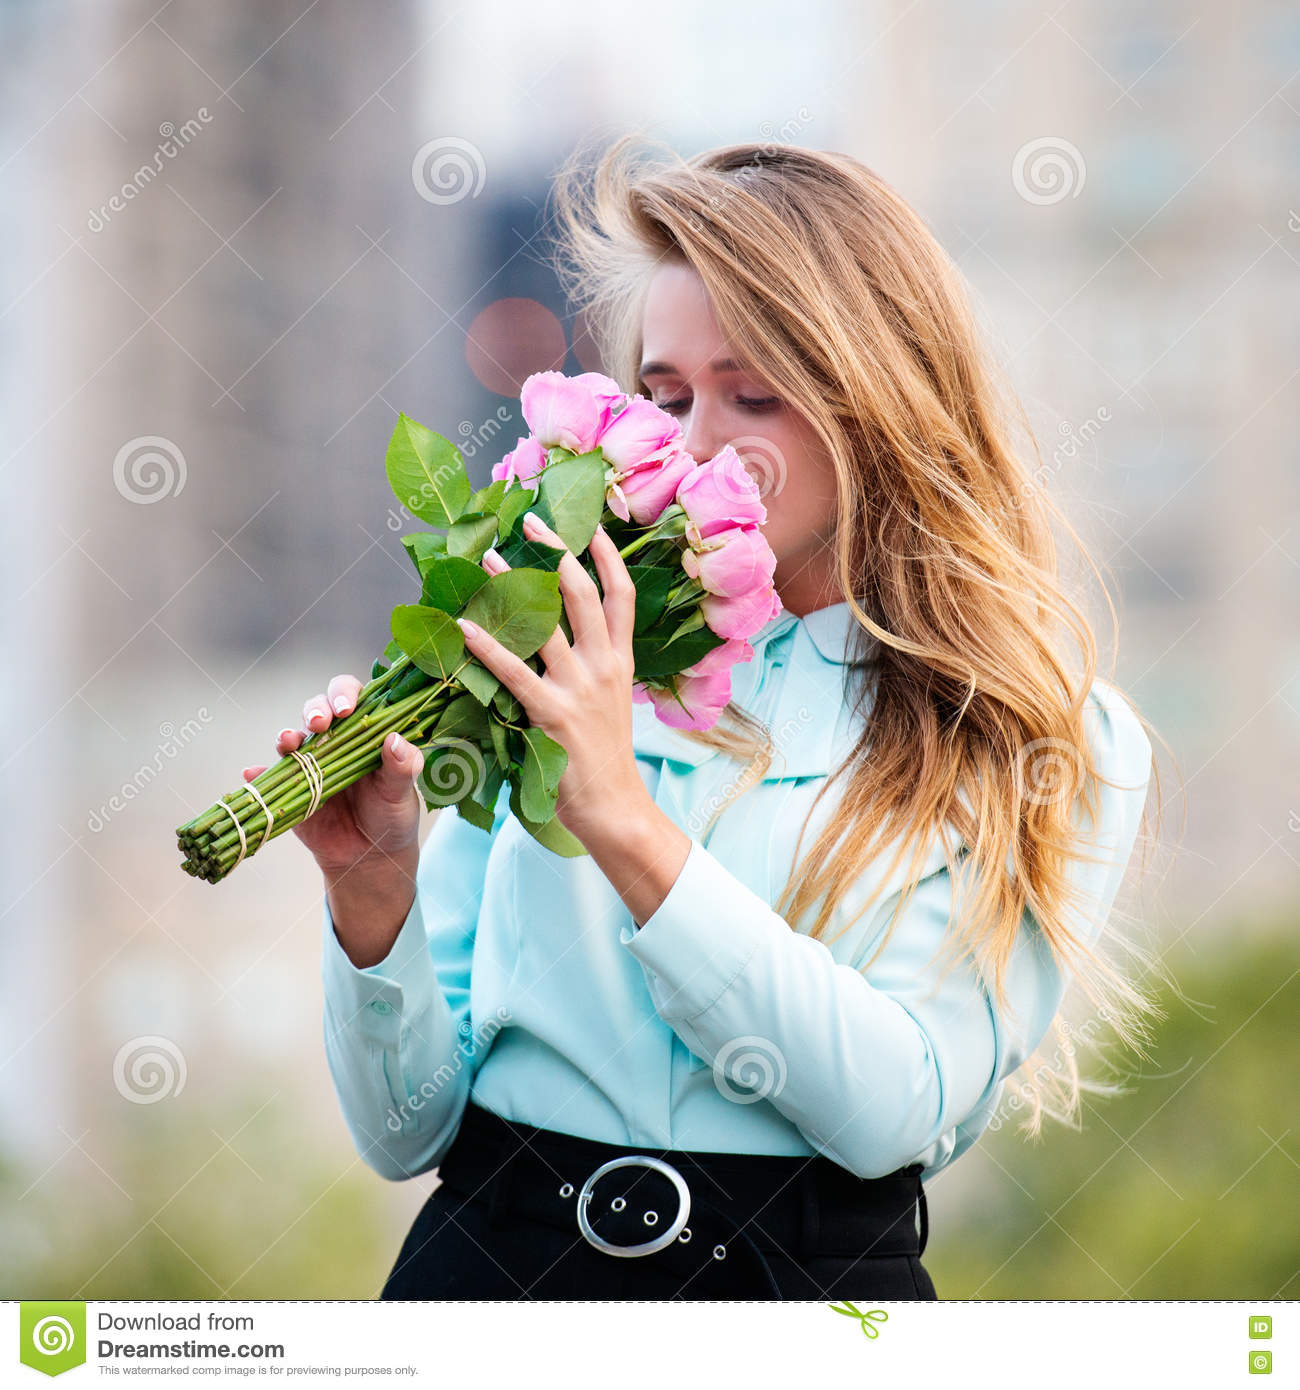 Beautiful girl holding bouquet of pink roses flowers on dating in beautiful girl holding bouquet of pink roses flowers on dating in the city izmirmasajfo Image collections